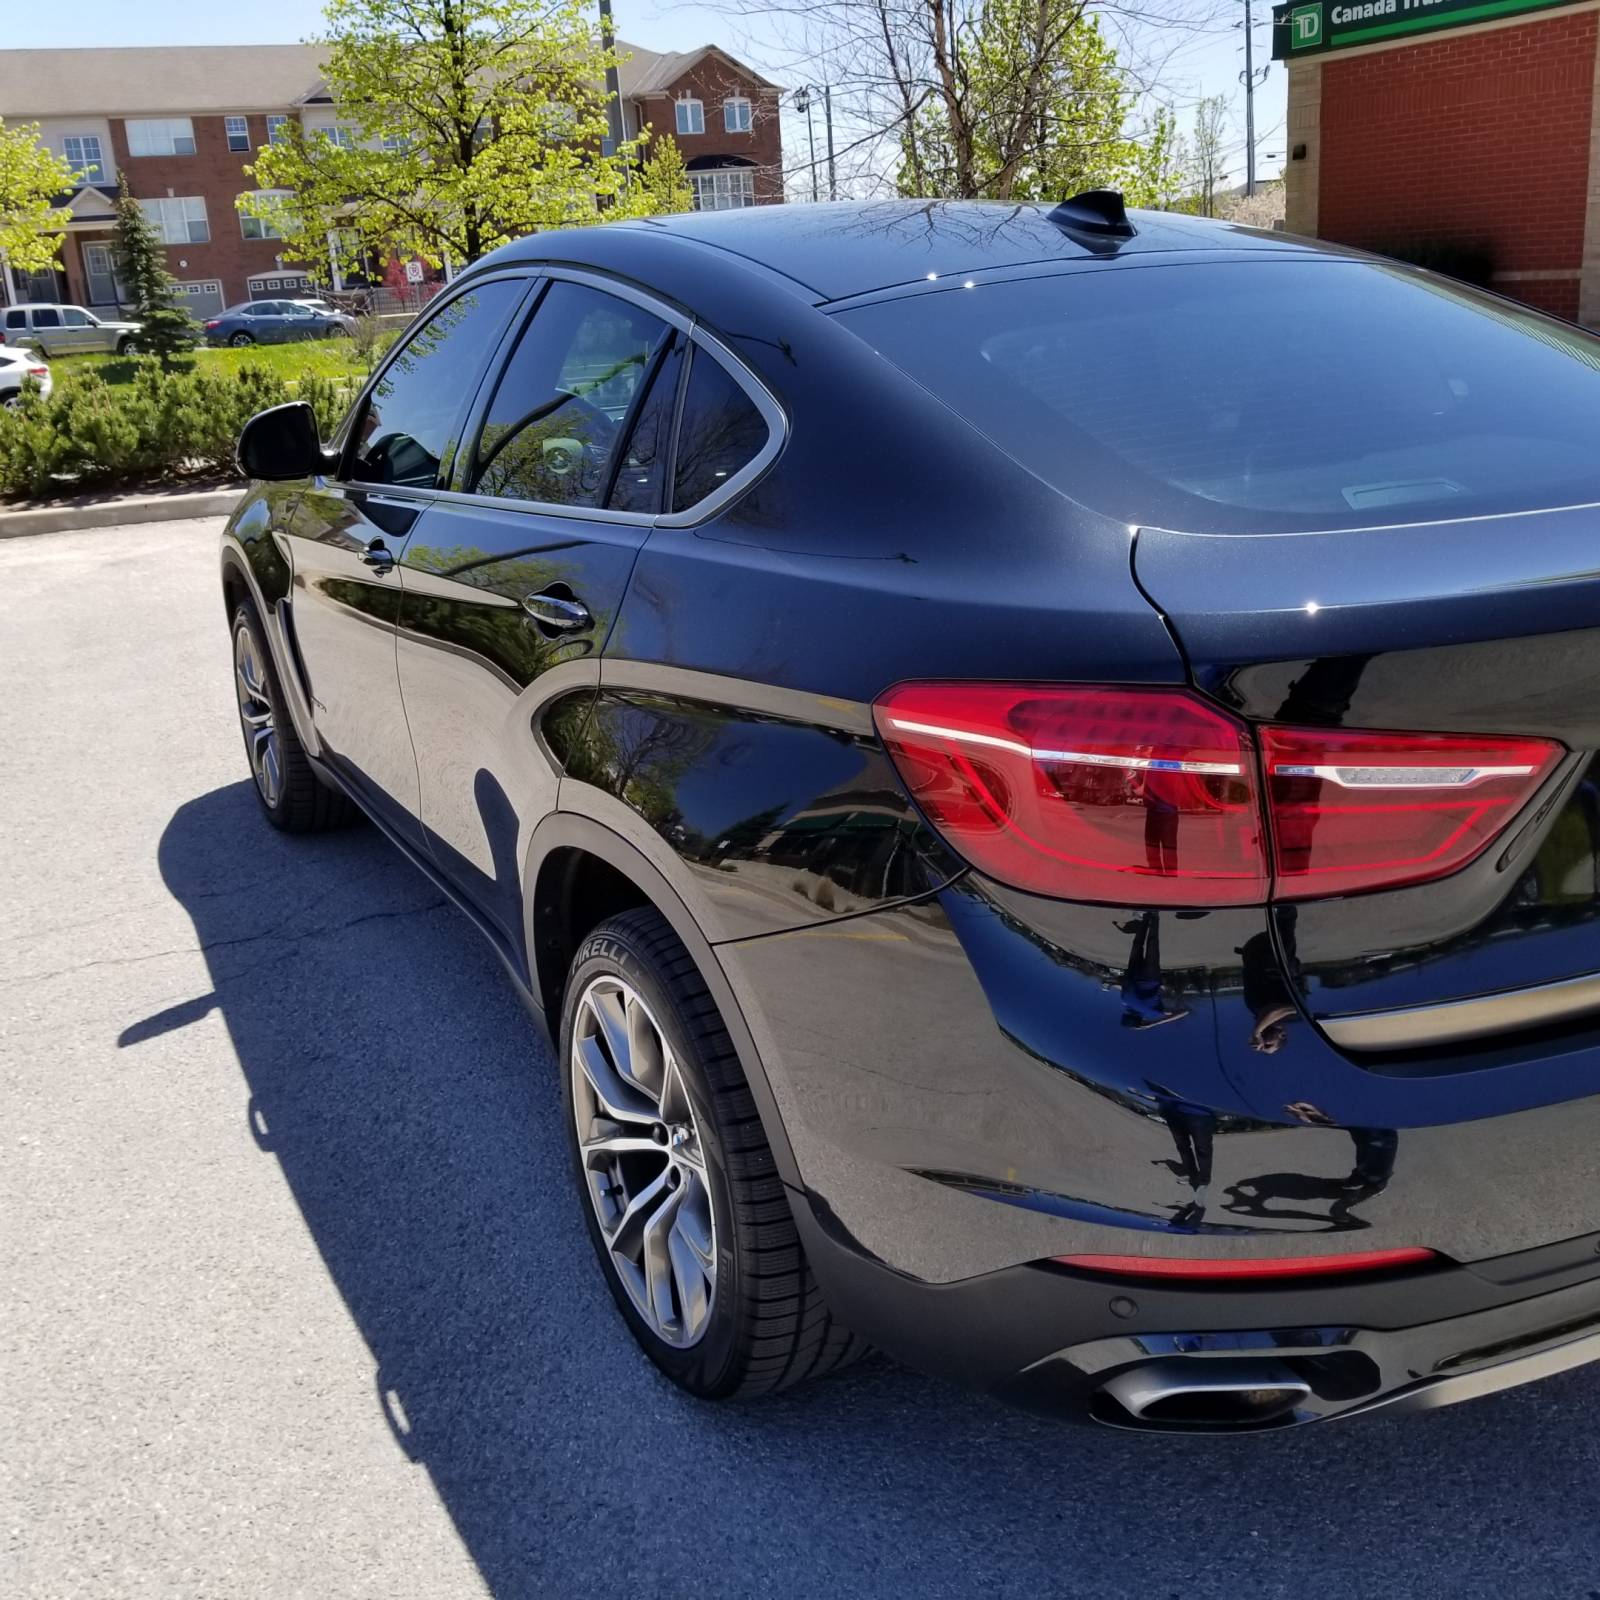 Bmw Xdrive35i Price: BMW Lease Takeover In Oakville, ON: 2018 BMW X6 XDrive 35i